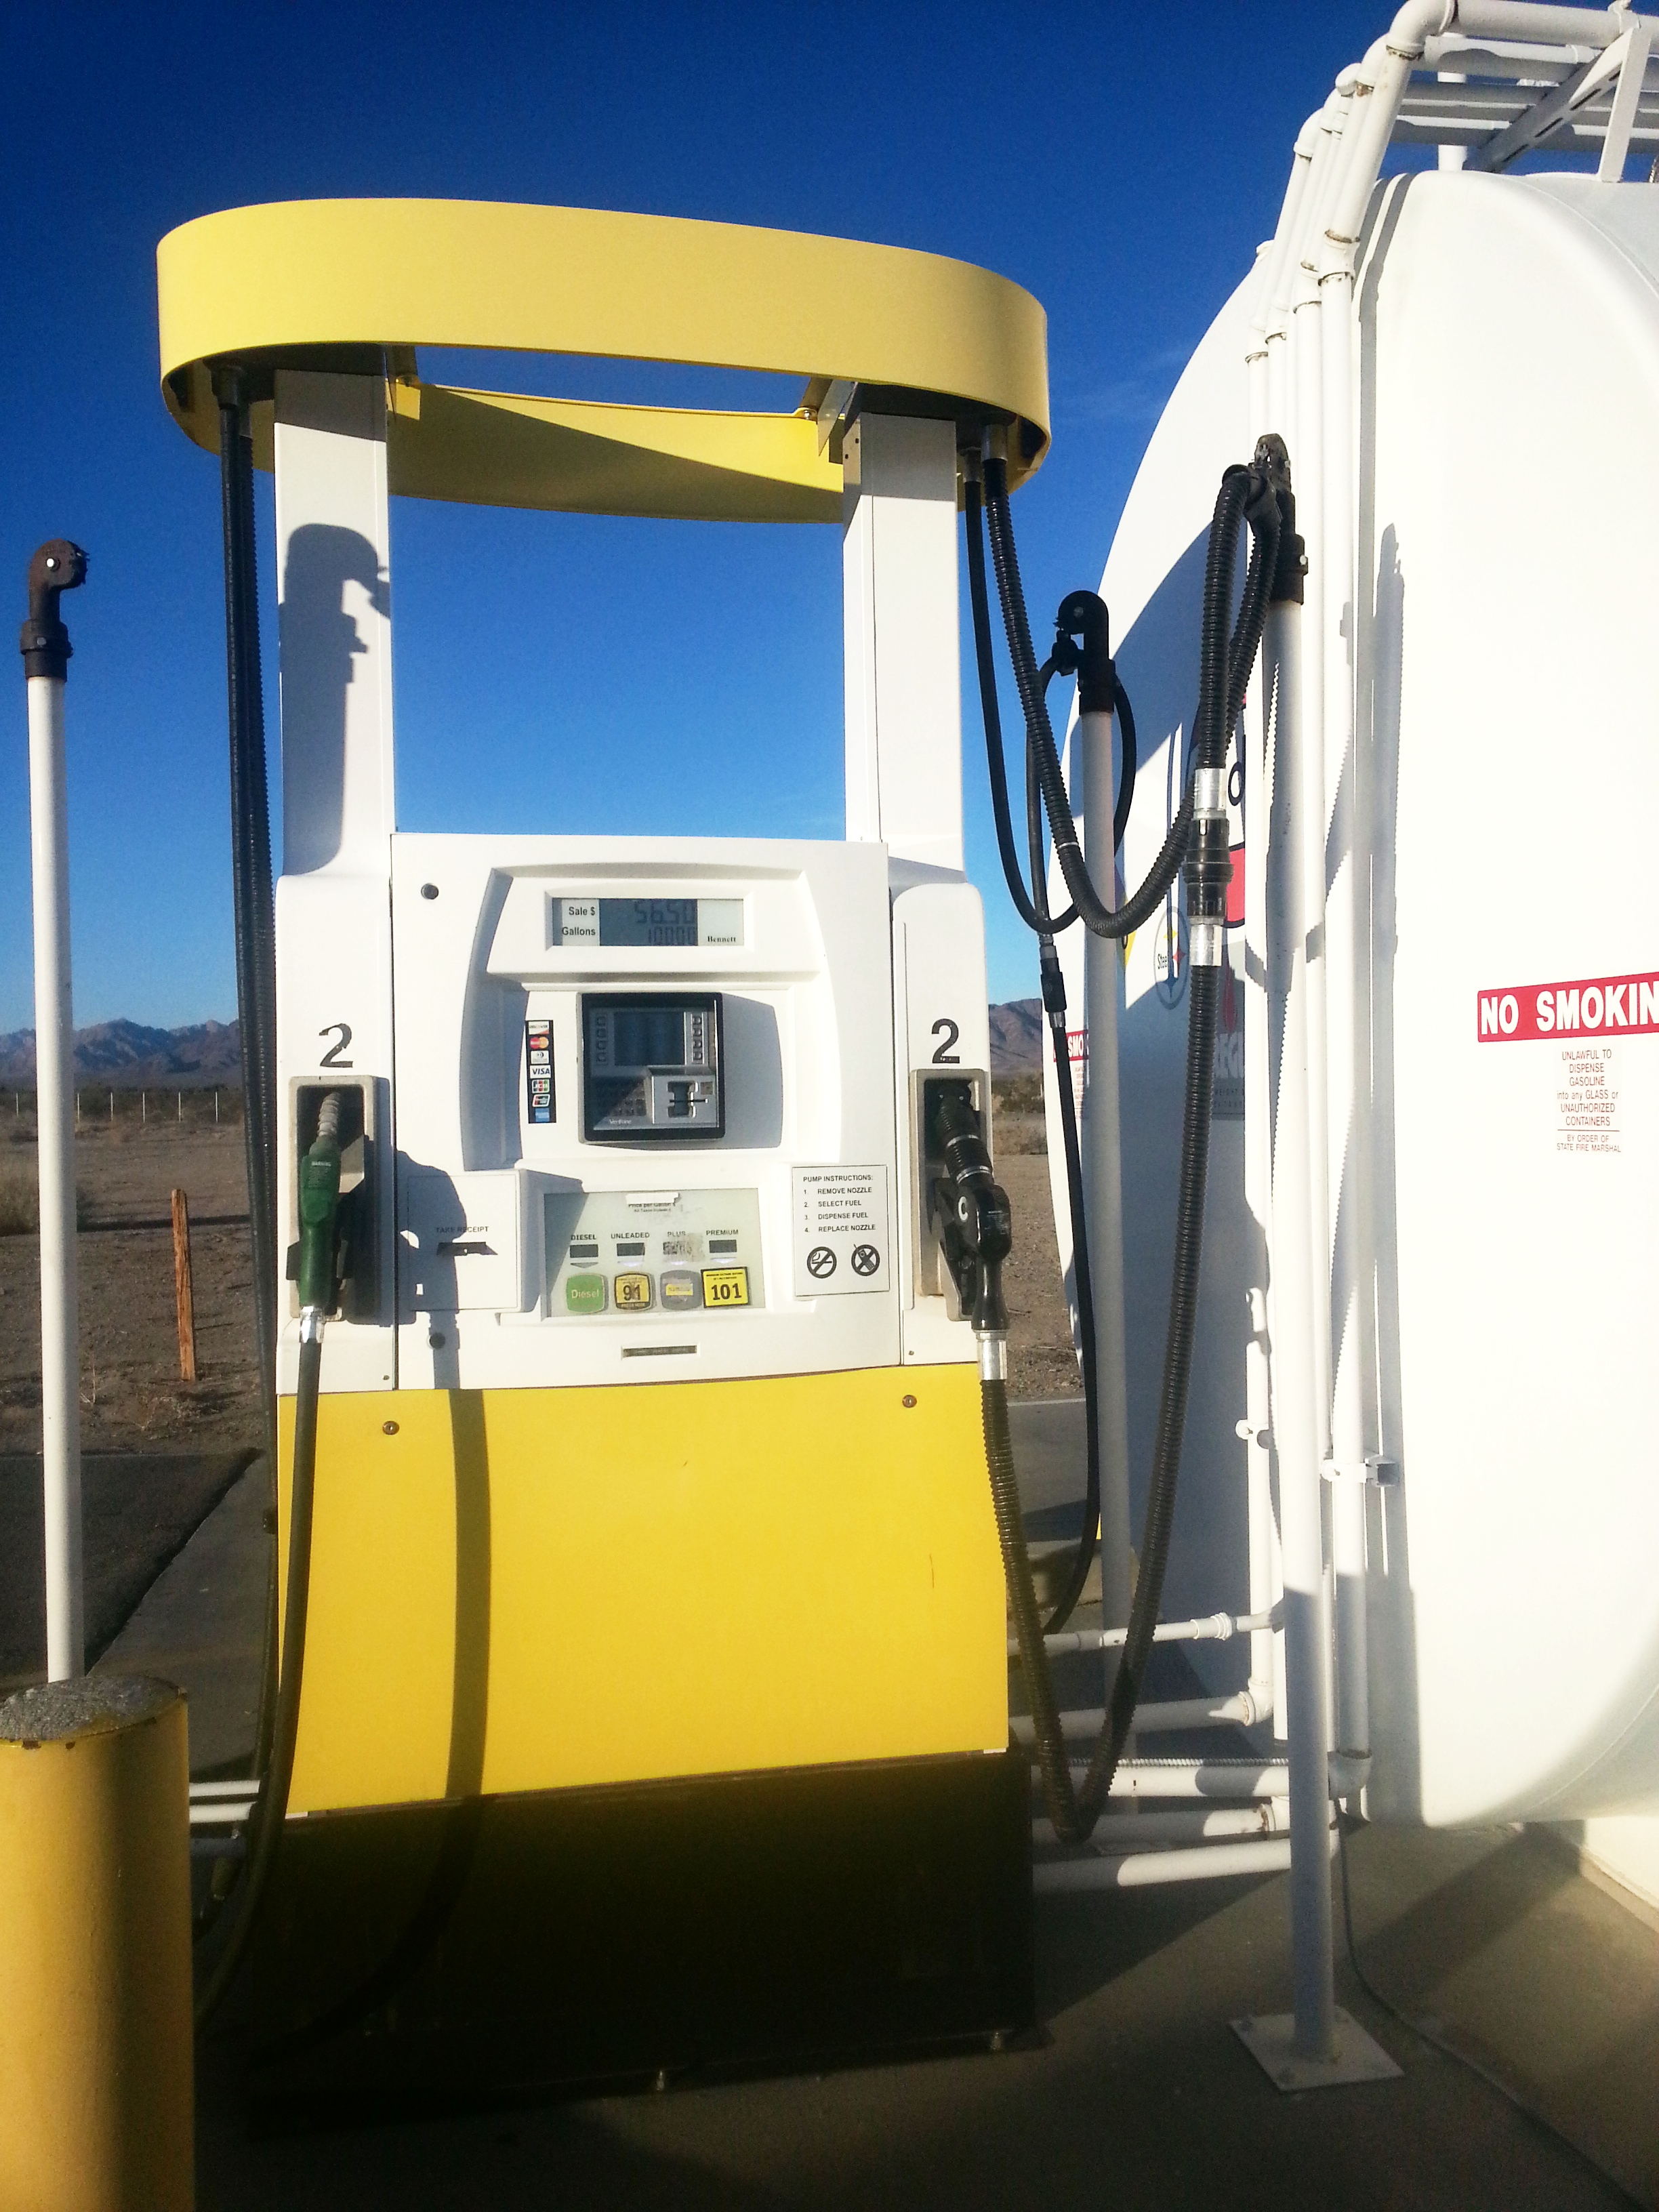 Fuel Pump 91 and 101.jpg